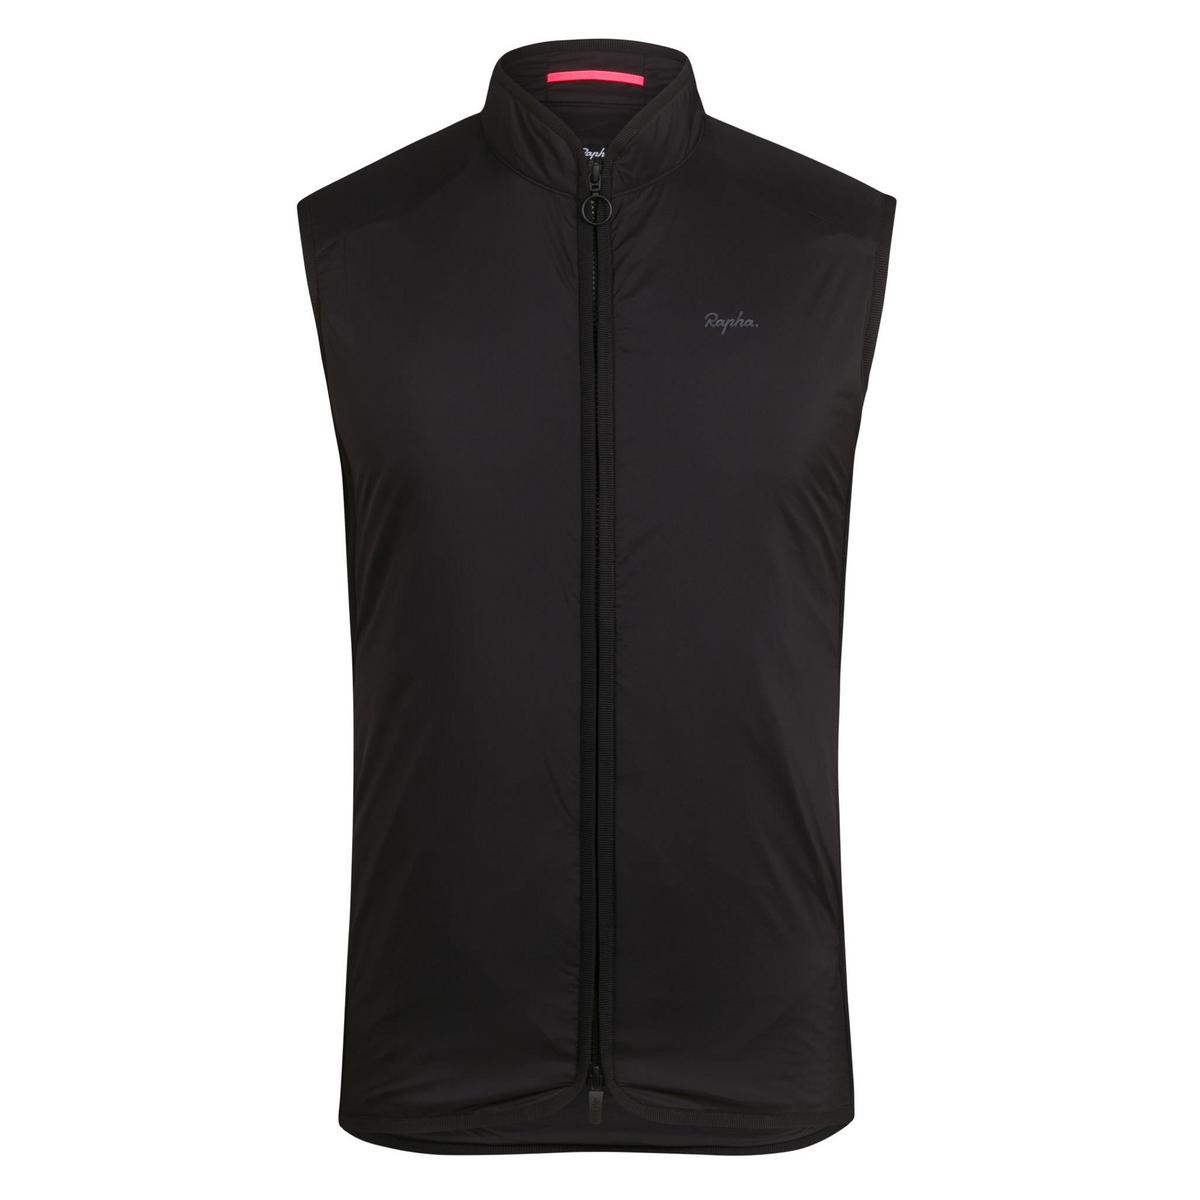 Pro Team Transfer Insulated Gilet